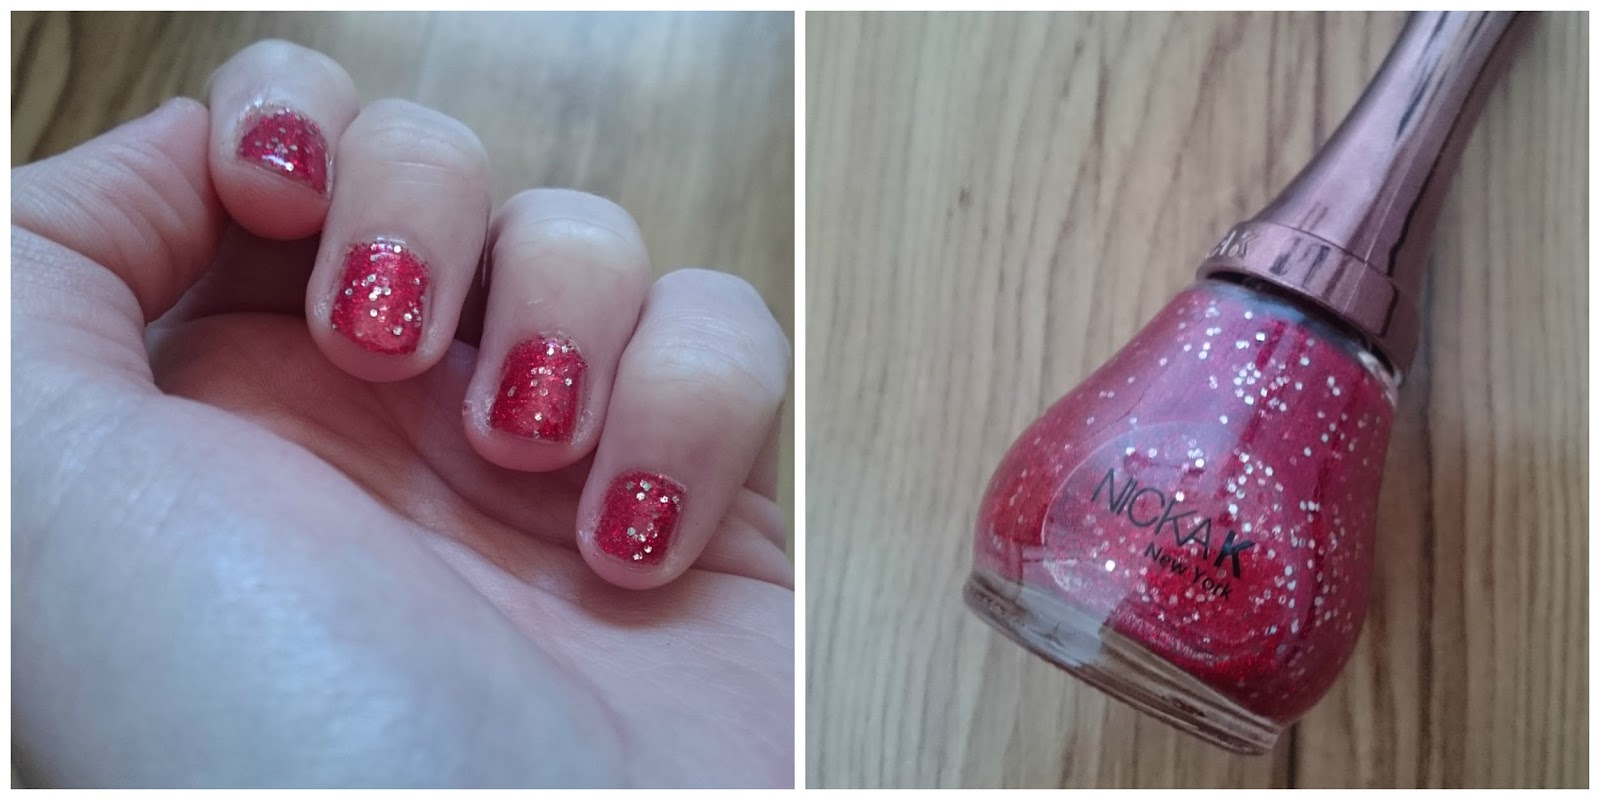 Little Fickle: Nicka K Nail Varnish Review and Swatches